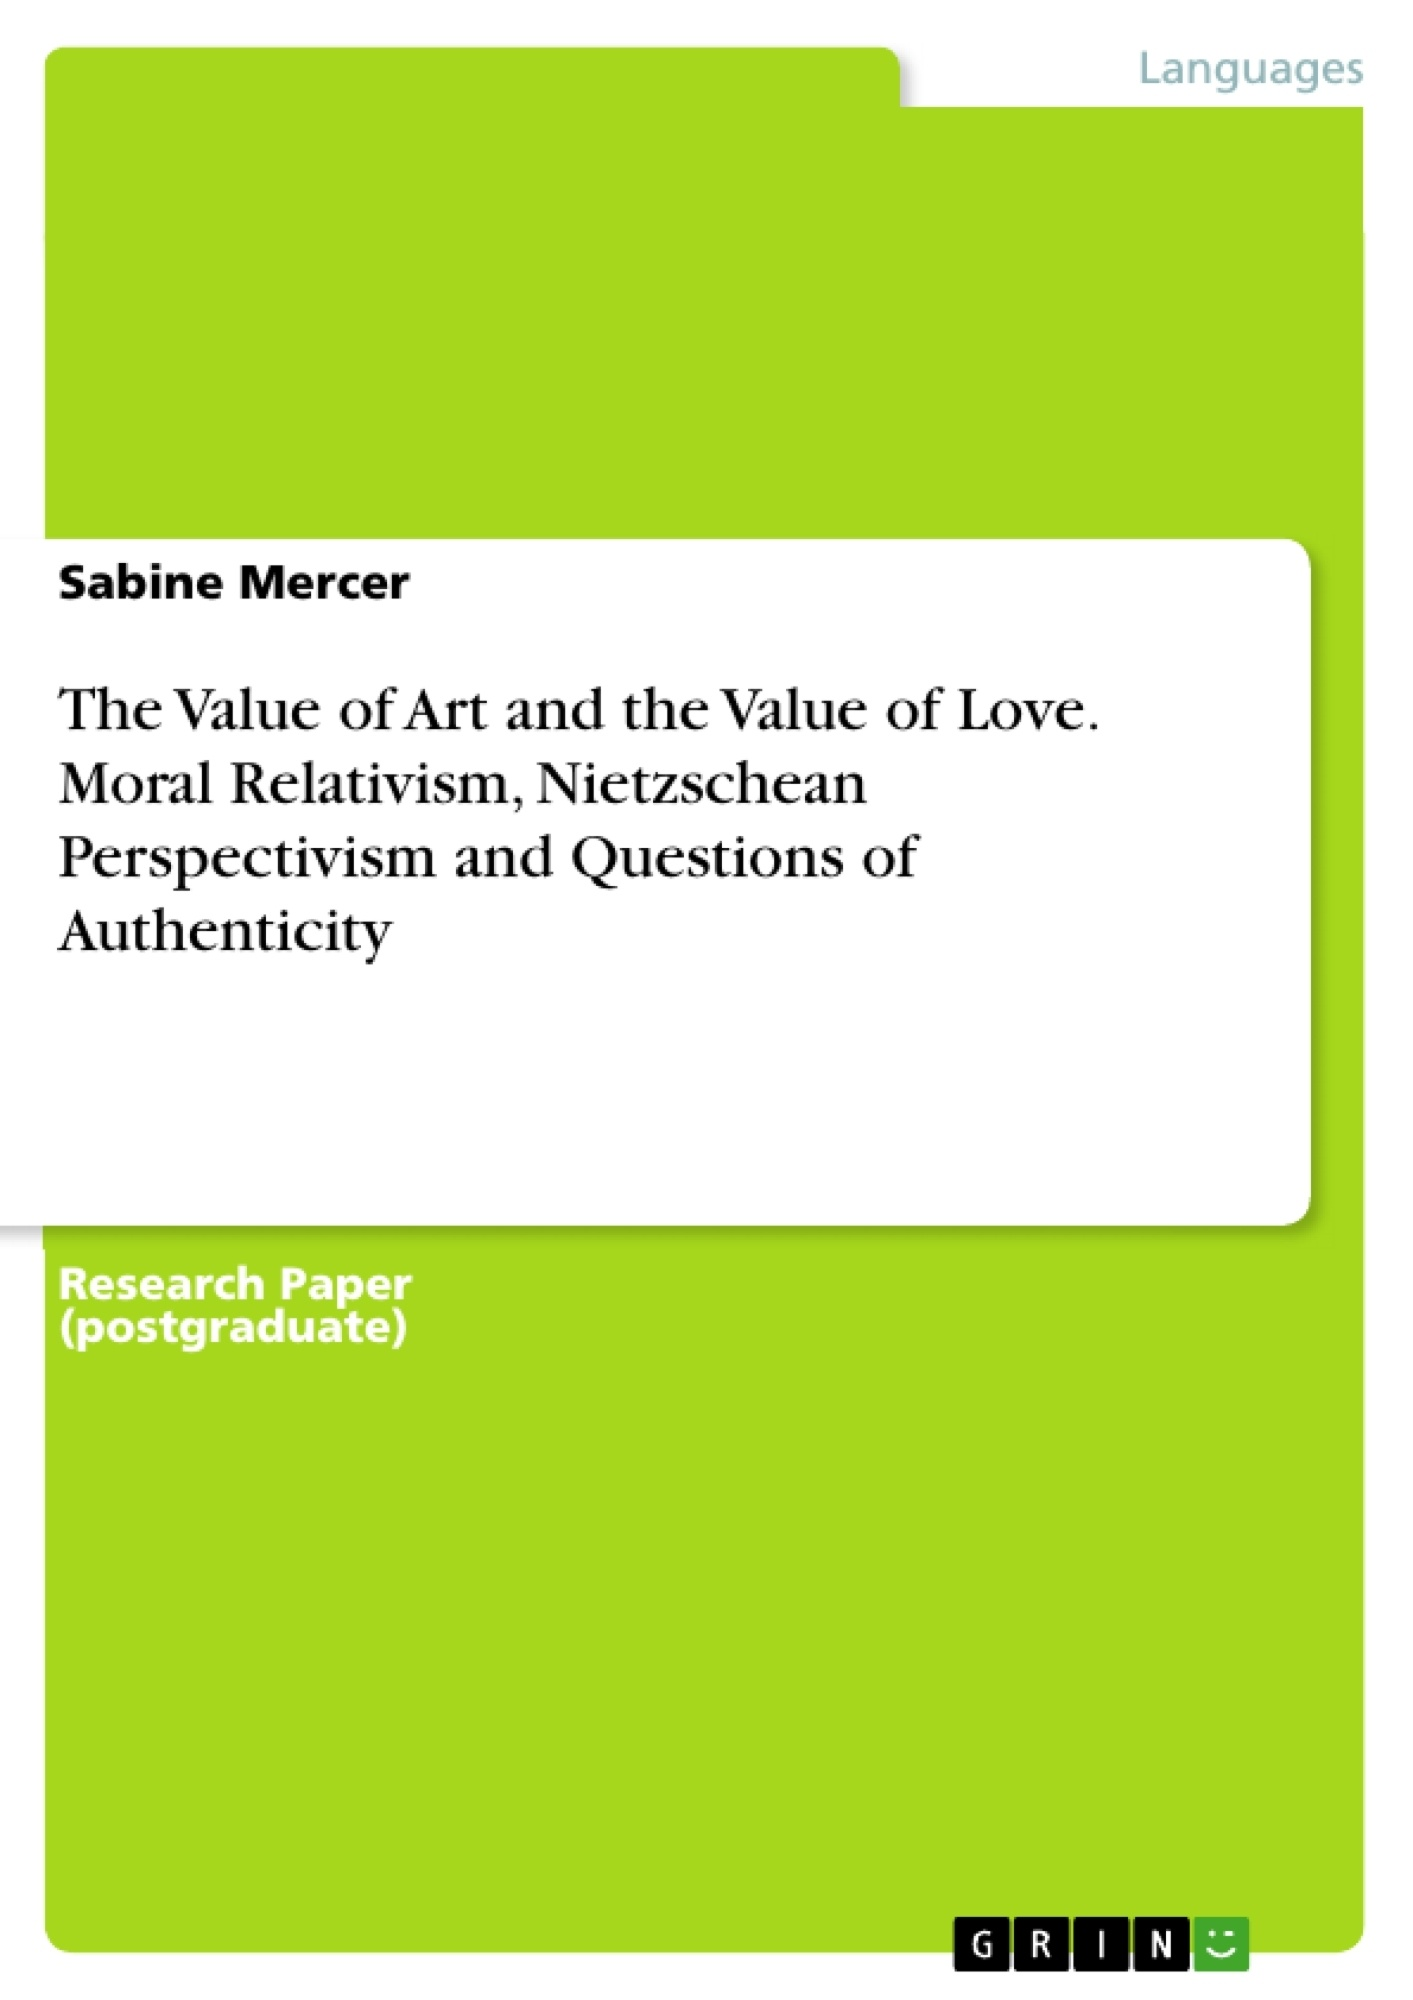 Title: The Value of Art and the Value of Love. Moral Relativism, Nietzschean Perspectivism  and Questions of Authenticity